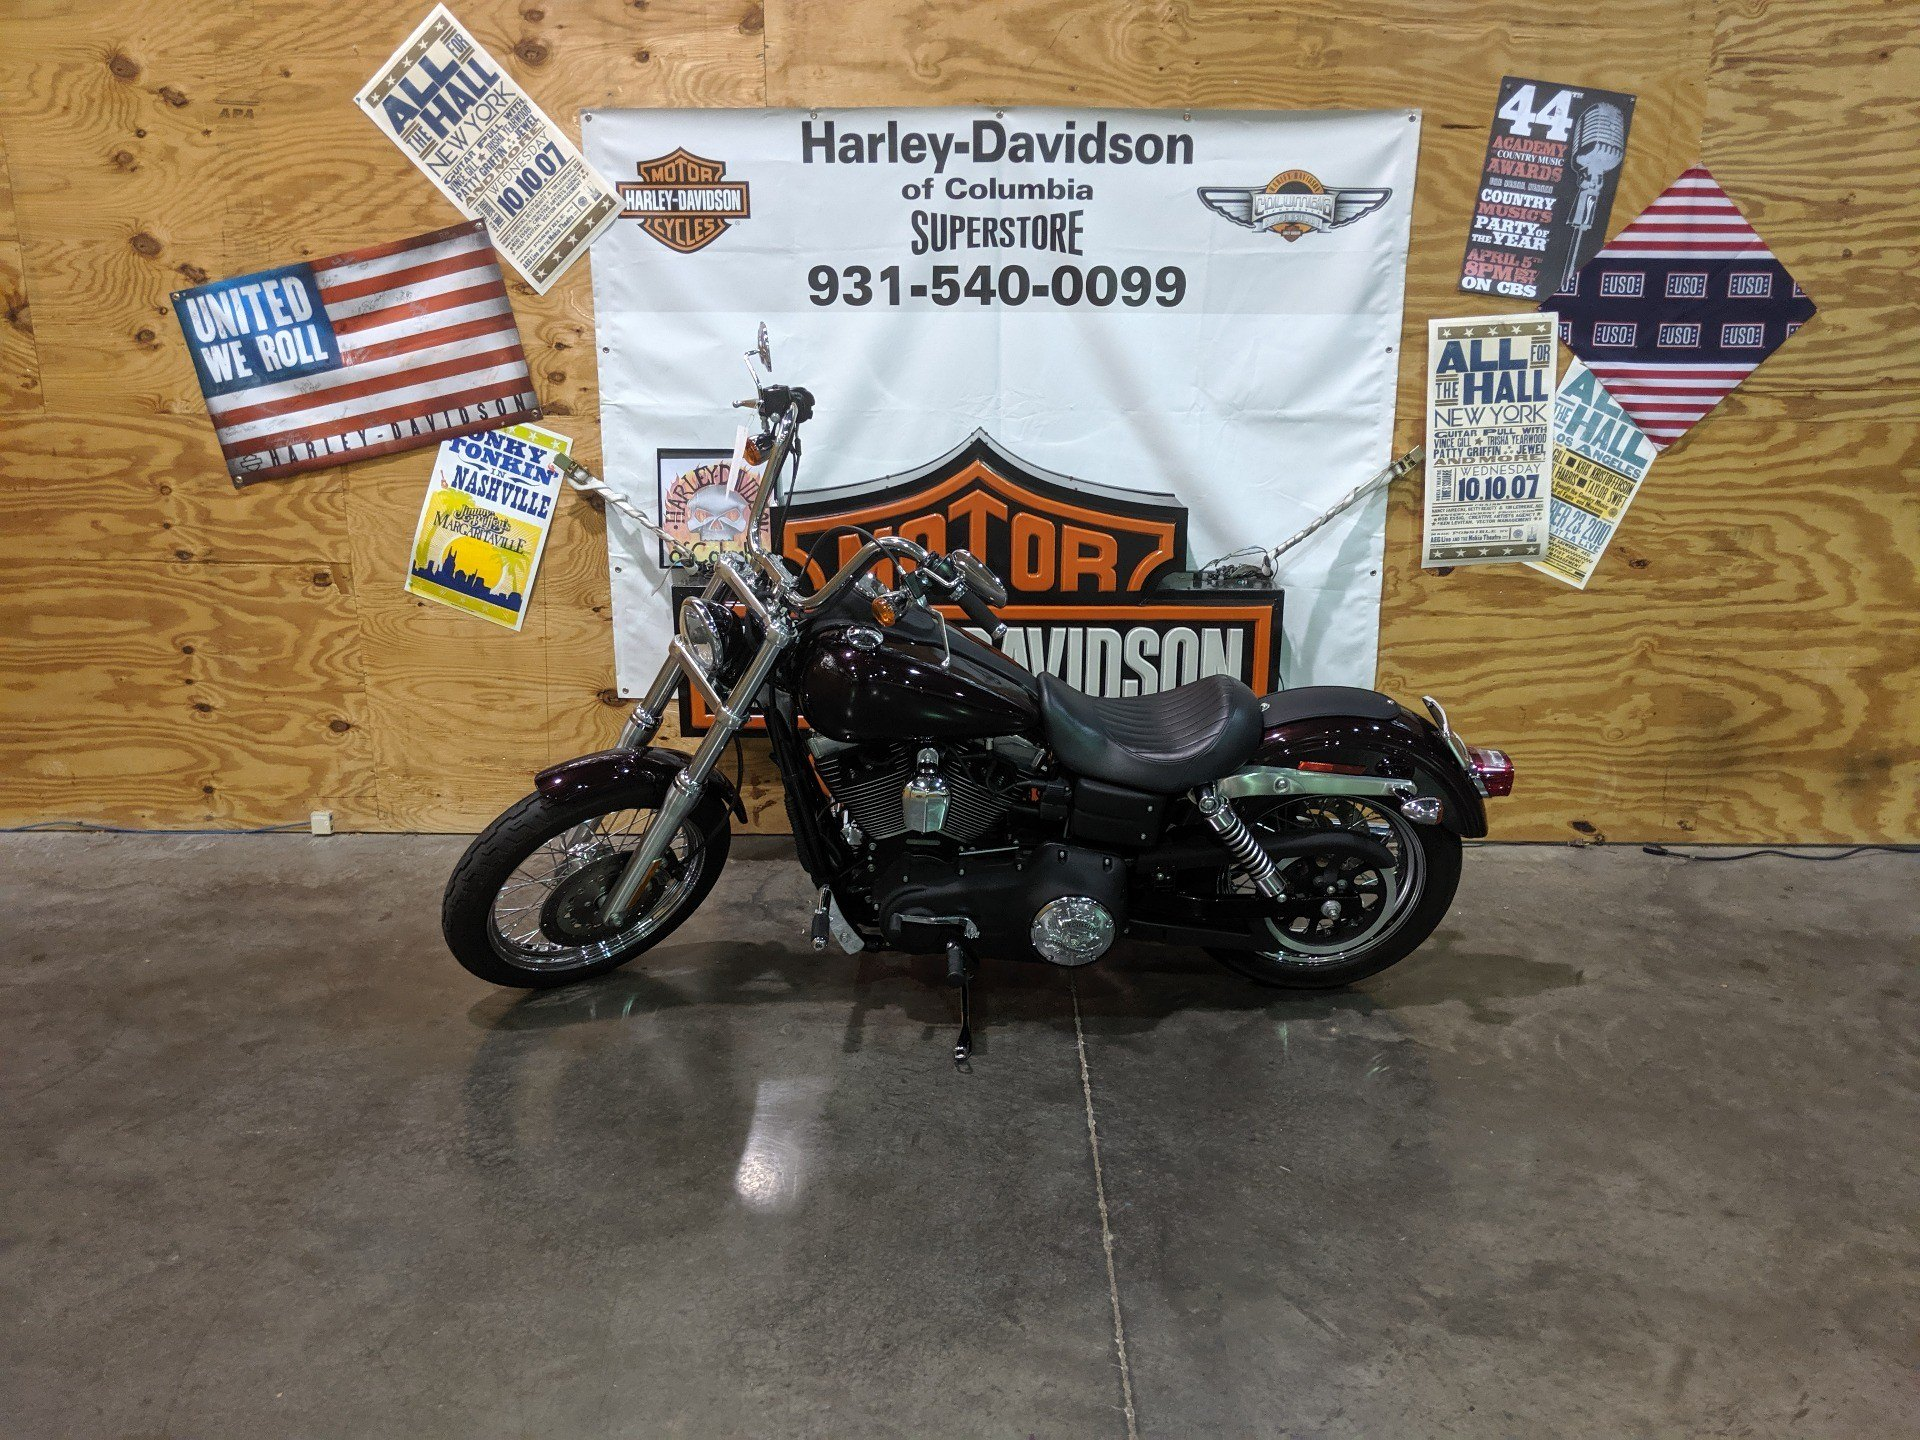 2007 Harley-Davidson STREET BOB in Columbia, Tennessee - Photo 5